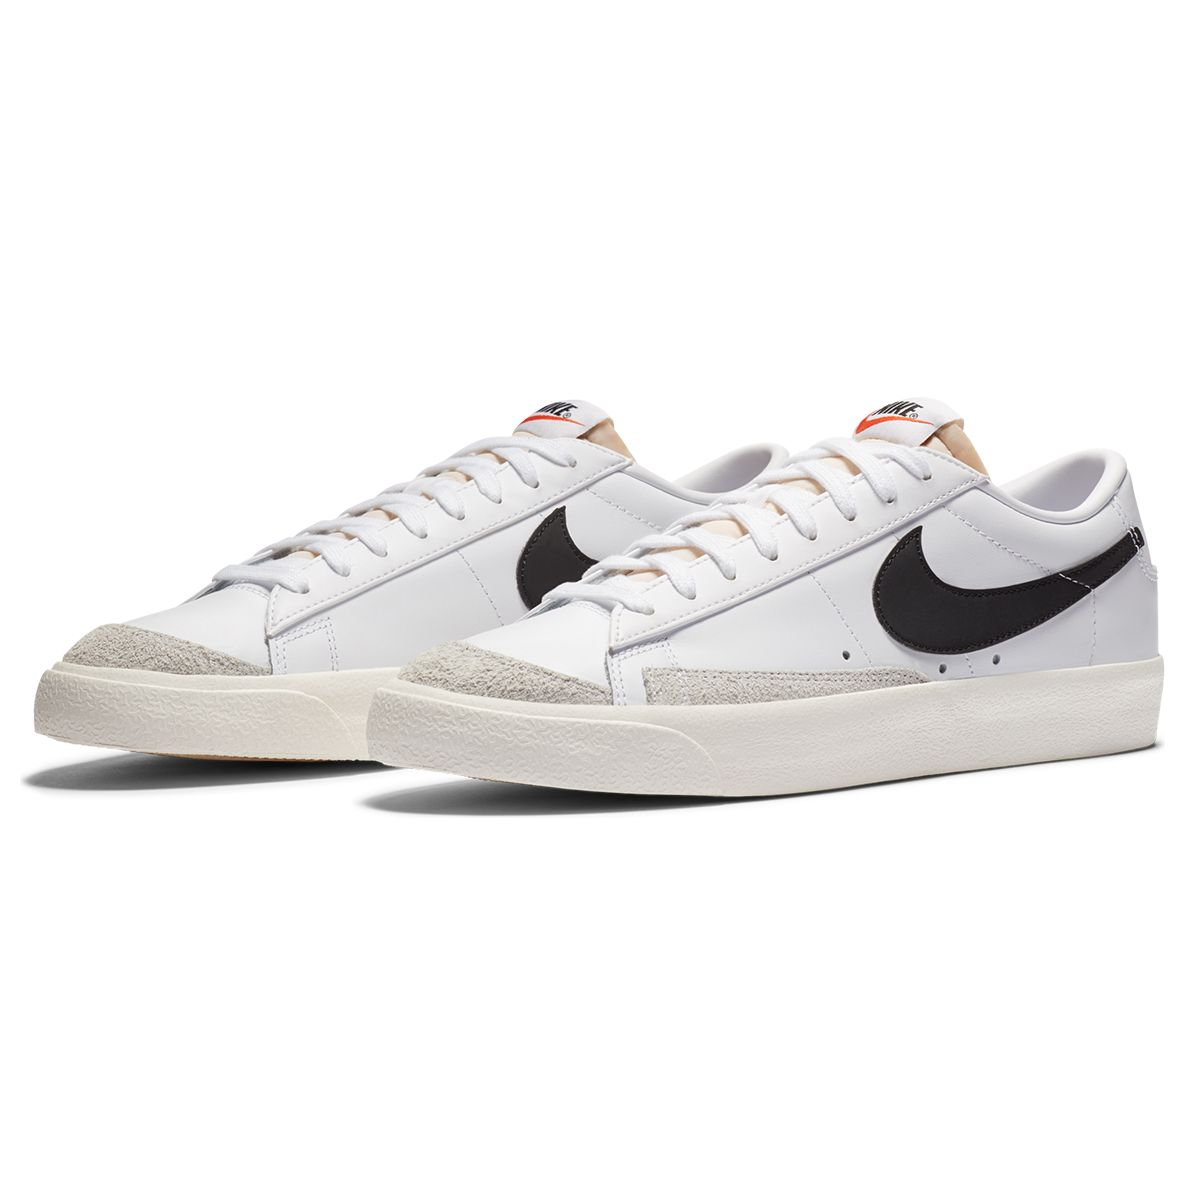 NIKE BLAZER LOW '77 VNTG / 101:WHITE-BLACK-SAIL